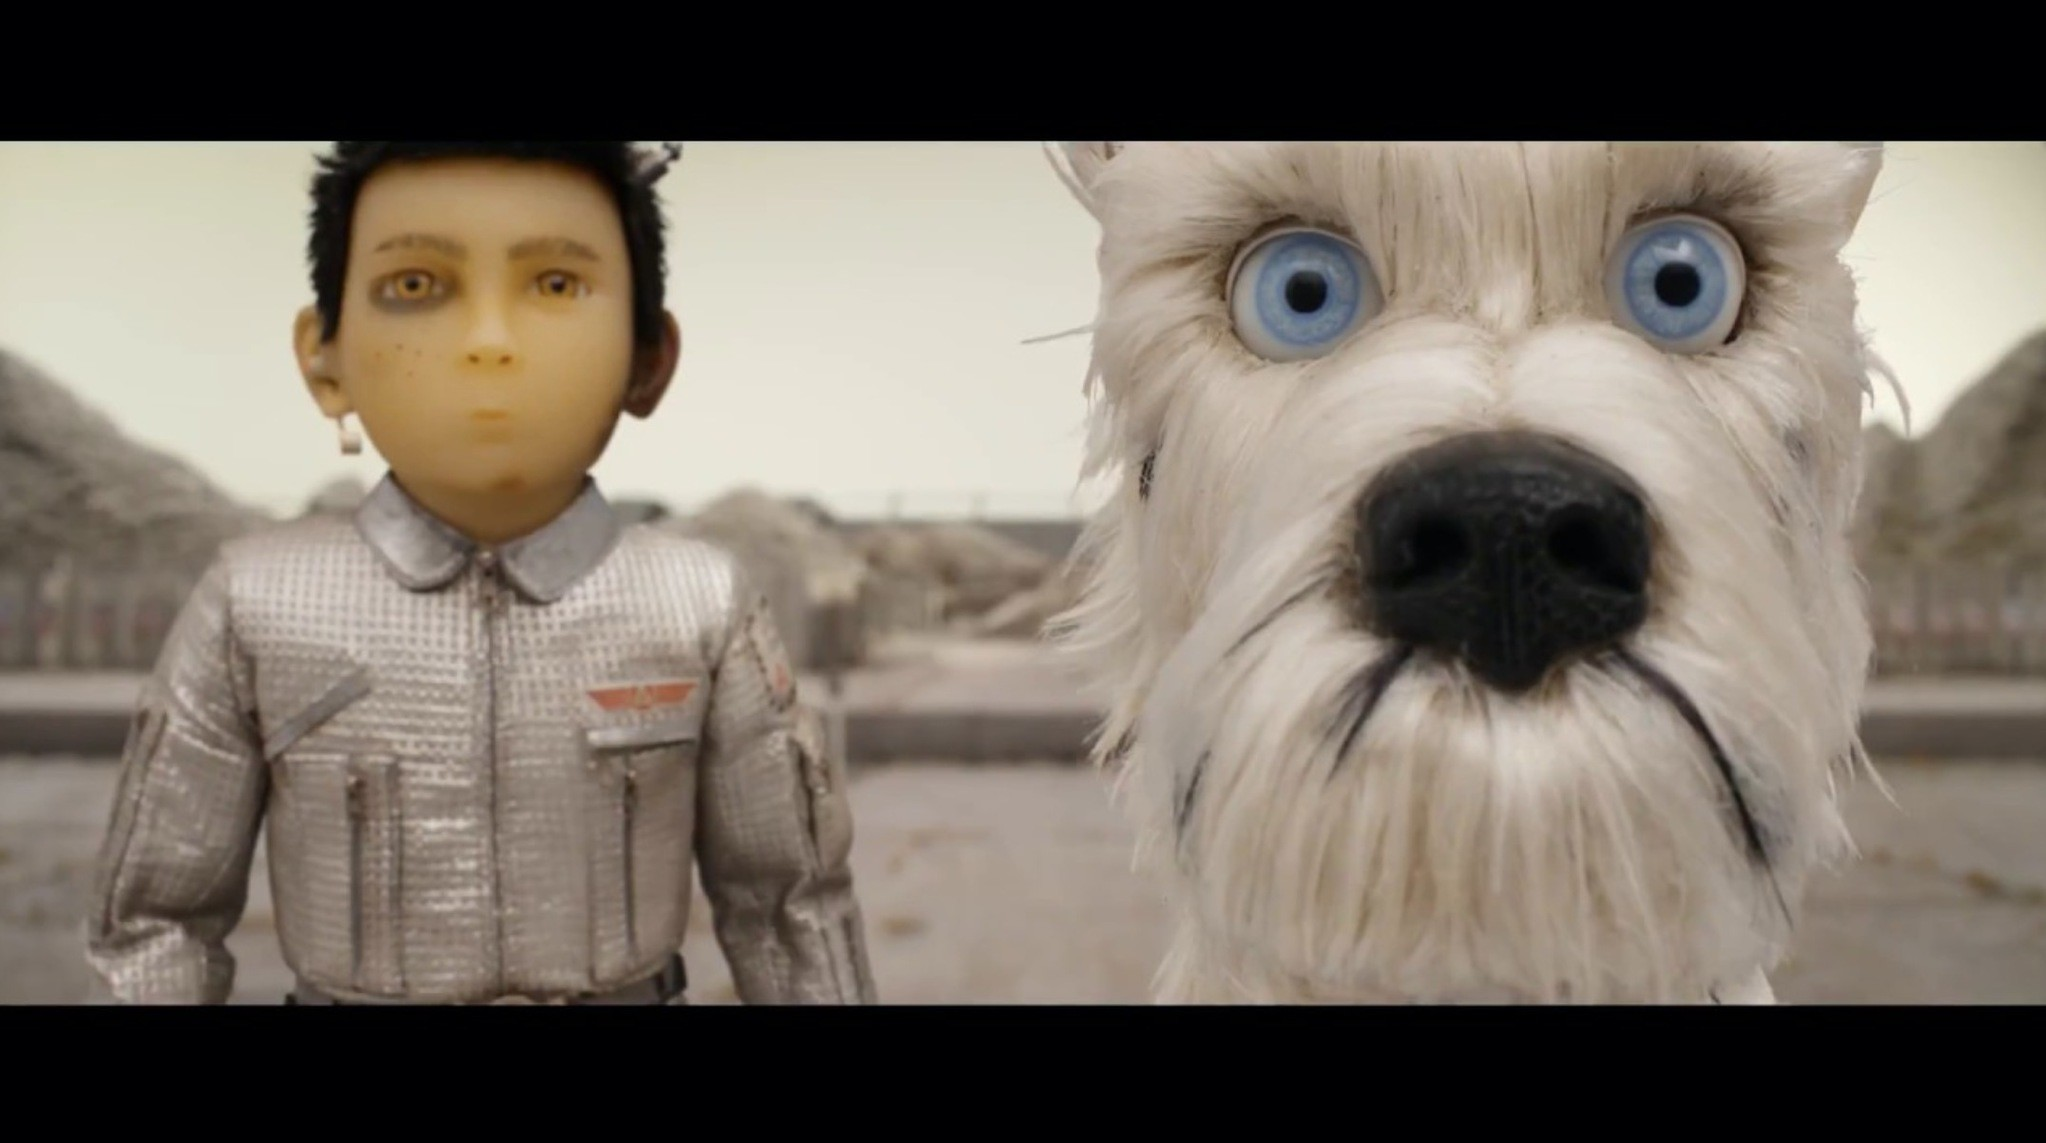 u201cThe Isle of Dogsu201d by Wes Anderson.